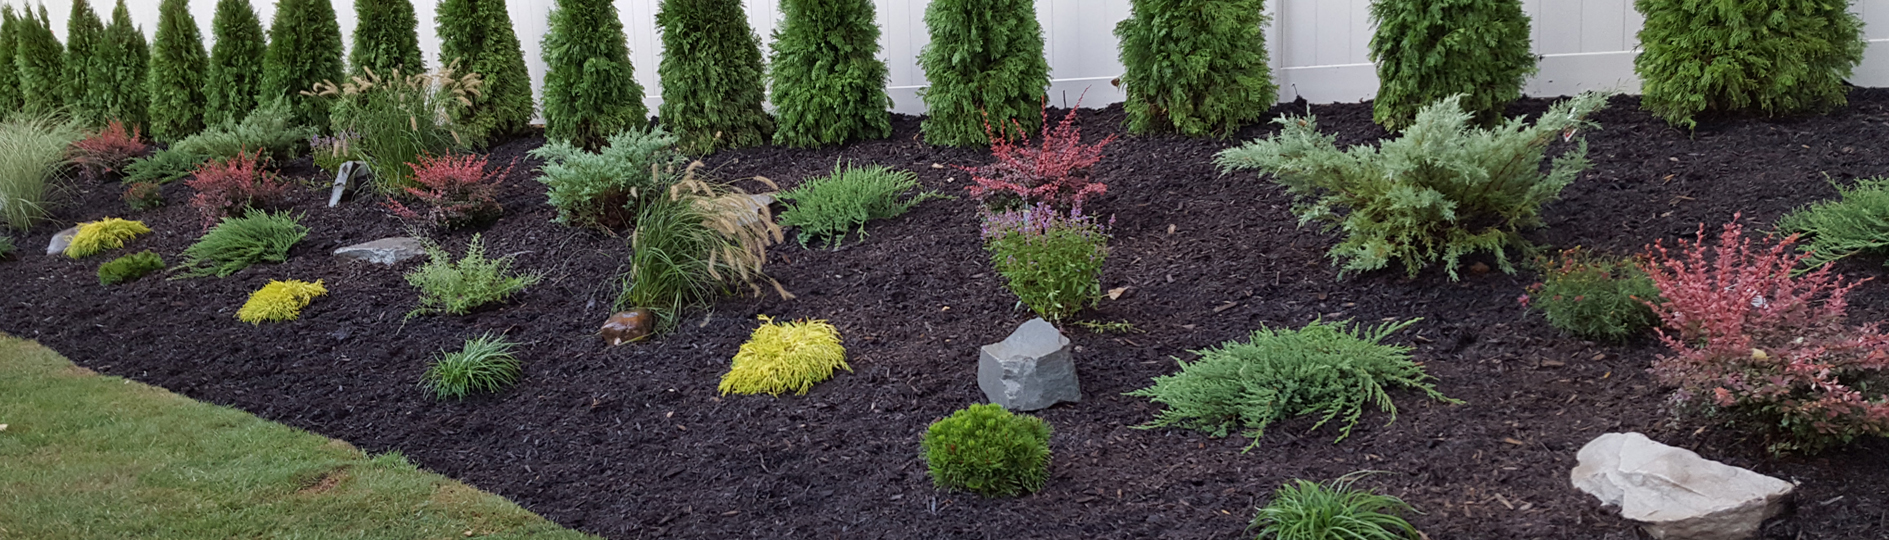 beautifuly desiged landscaping in Bergen County NJ